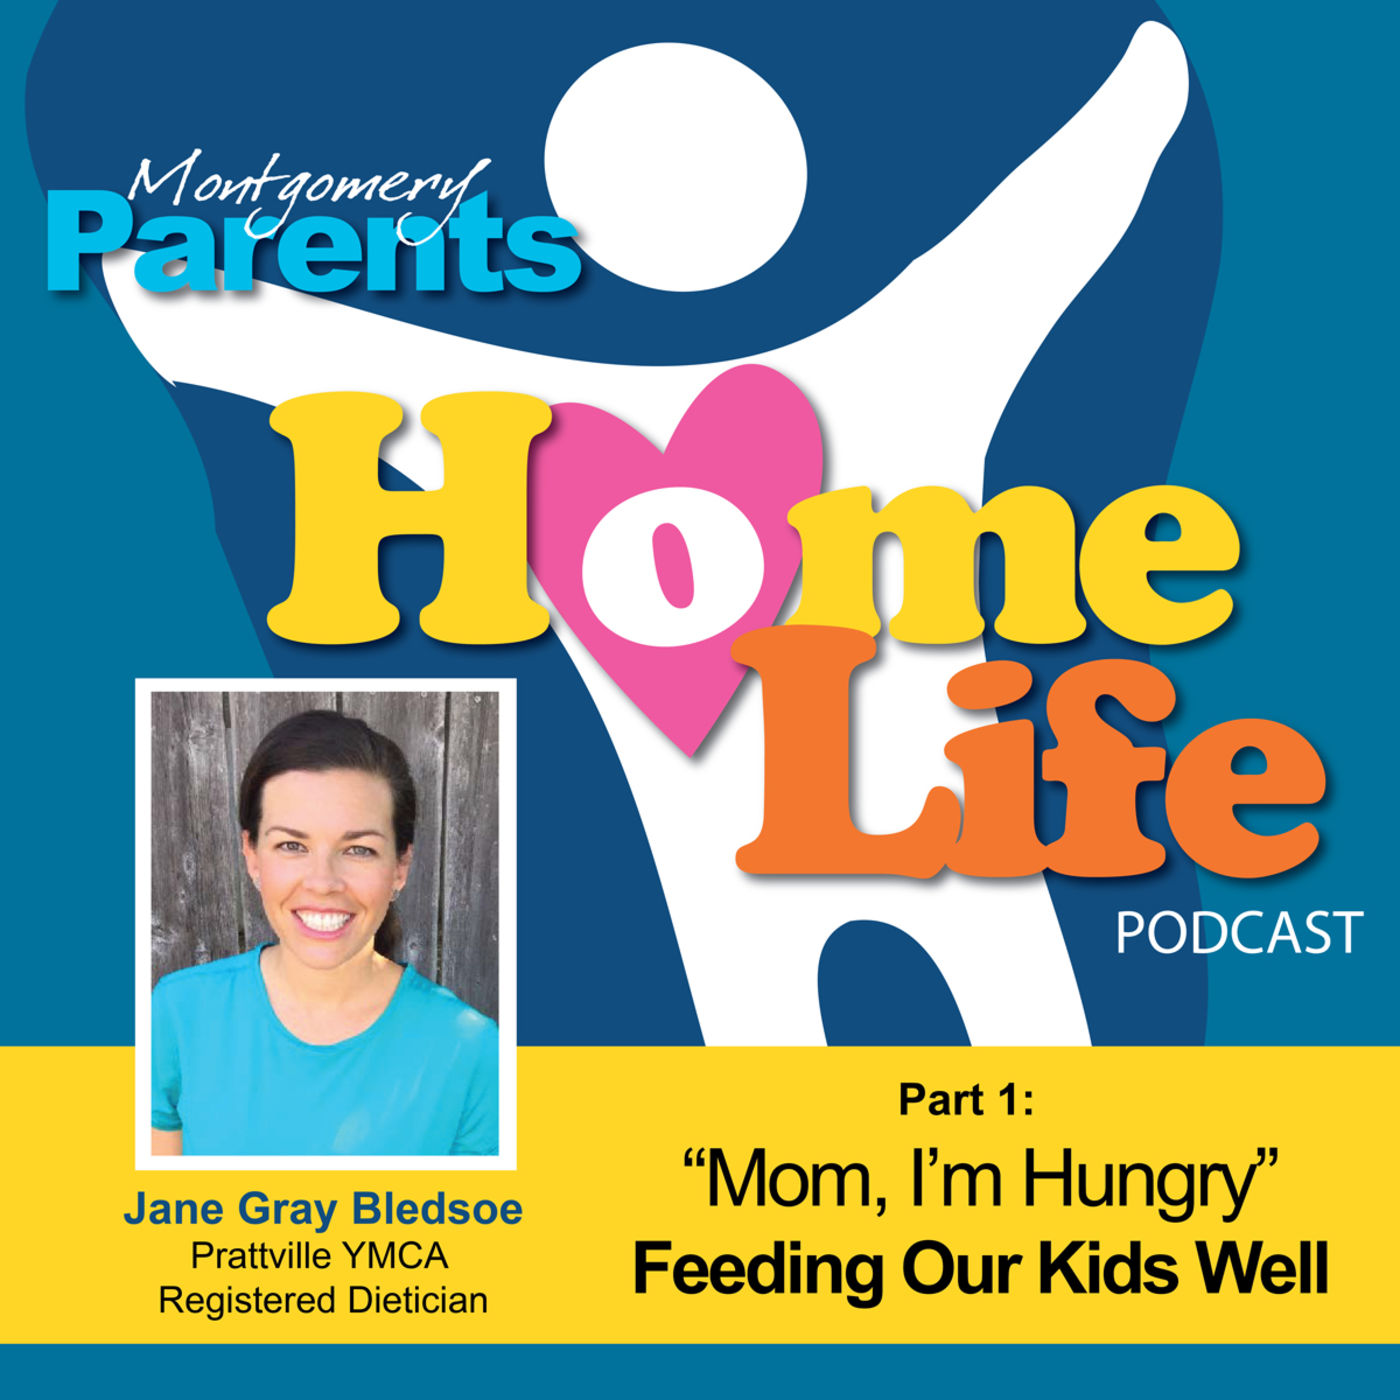 Part 2 - Feeding Our Kids Well with Jane Gray Bledsoe